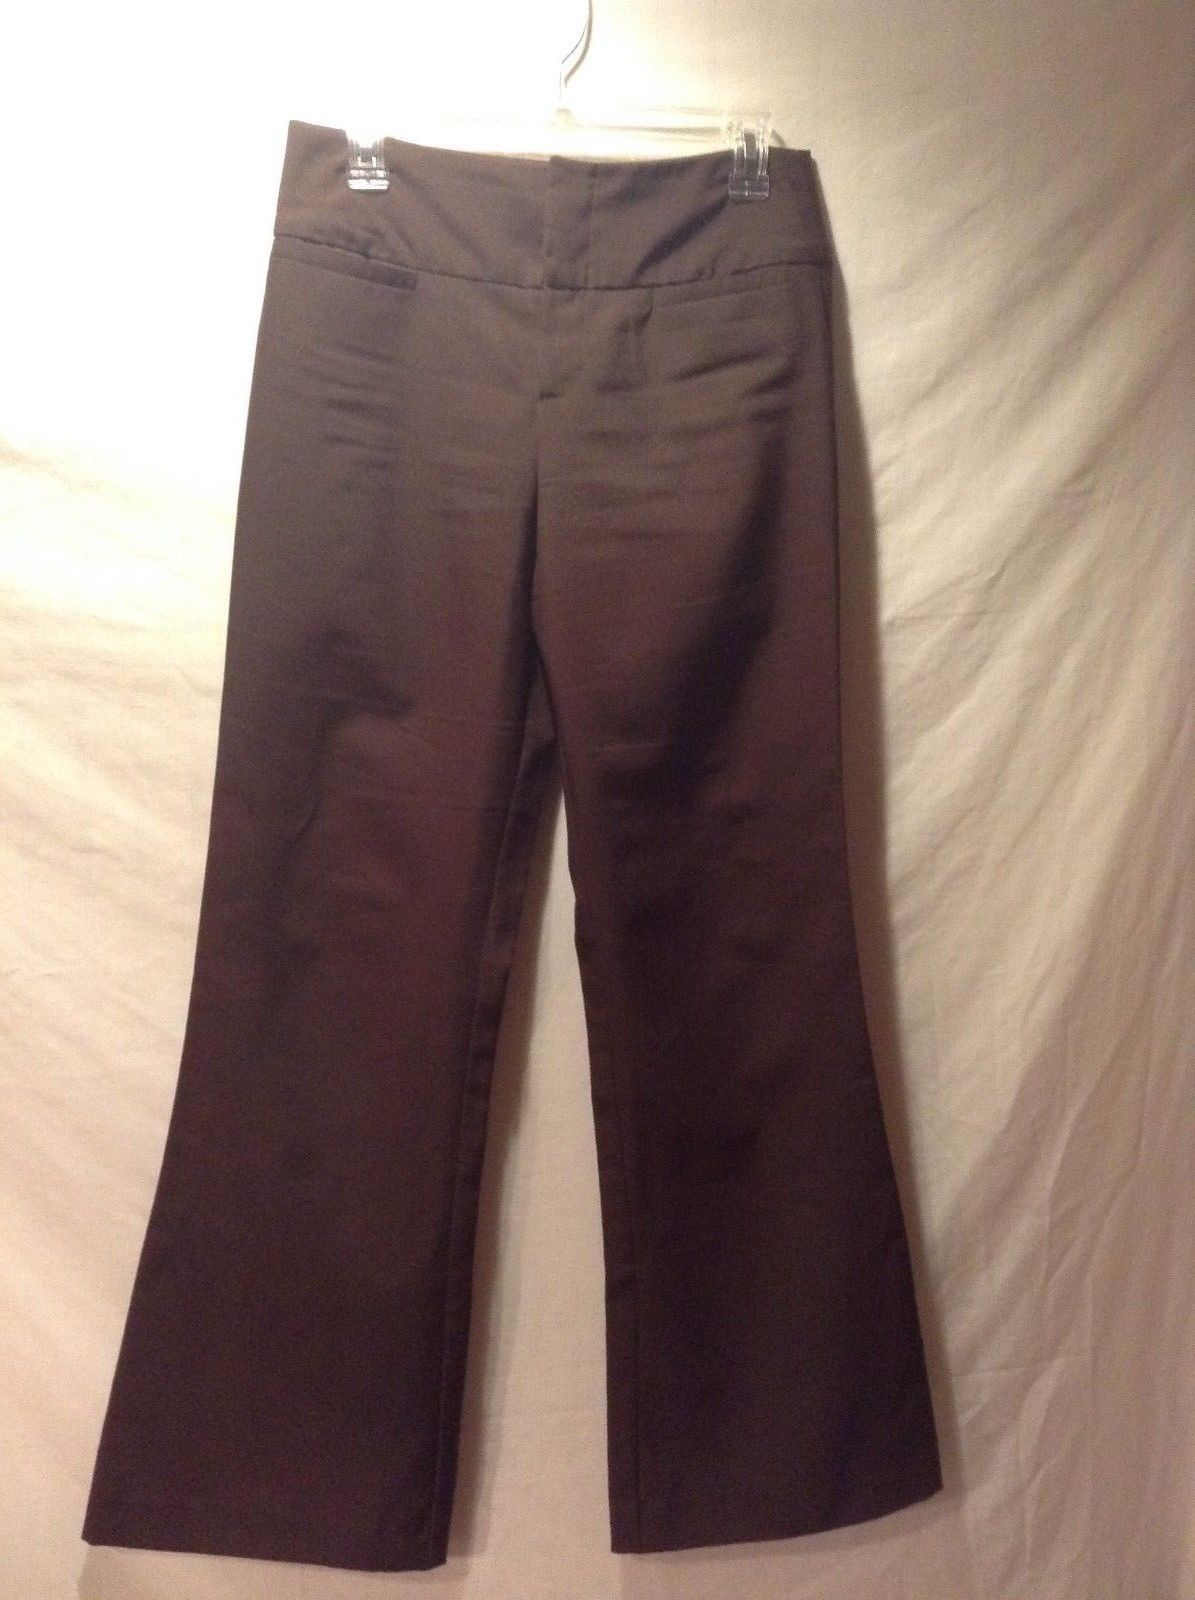 Super Cute Ladies Brown Flared Dress Pants